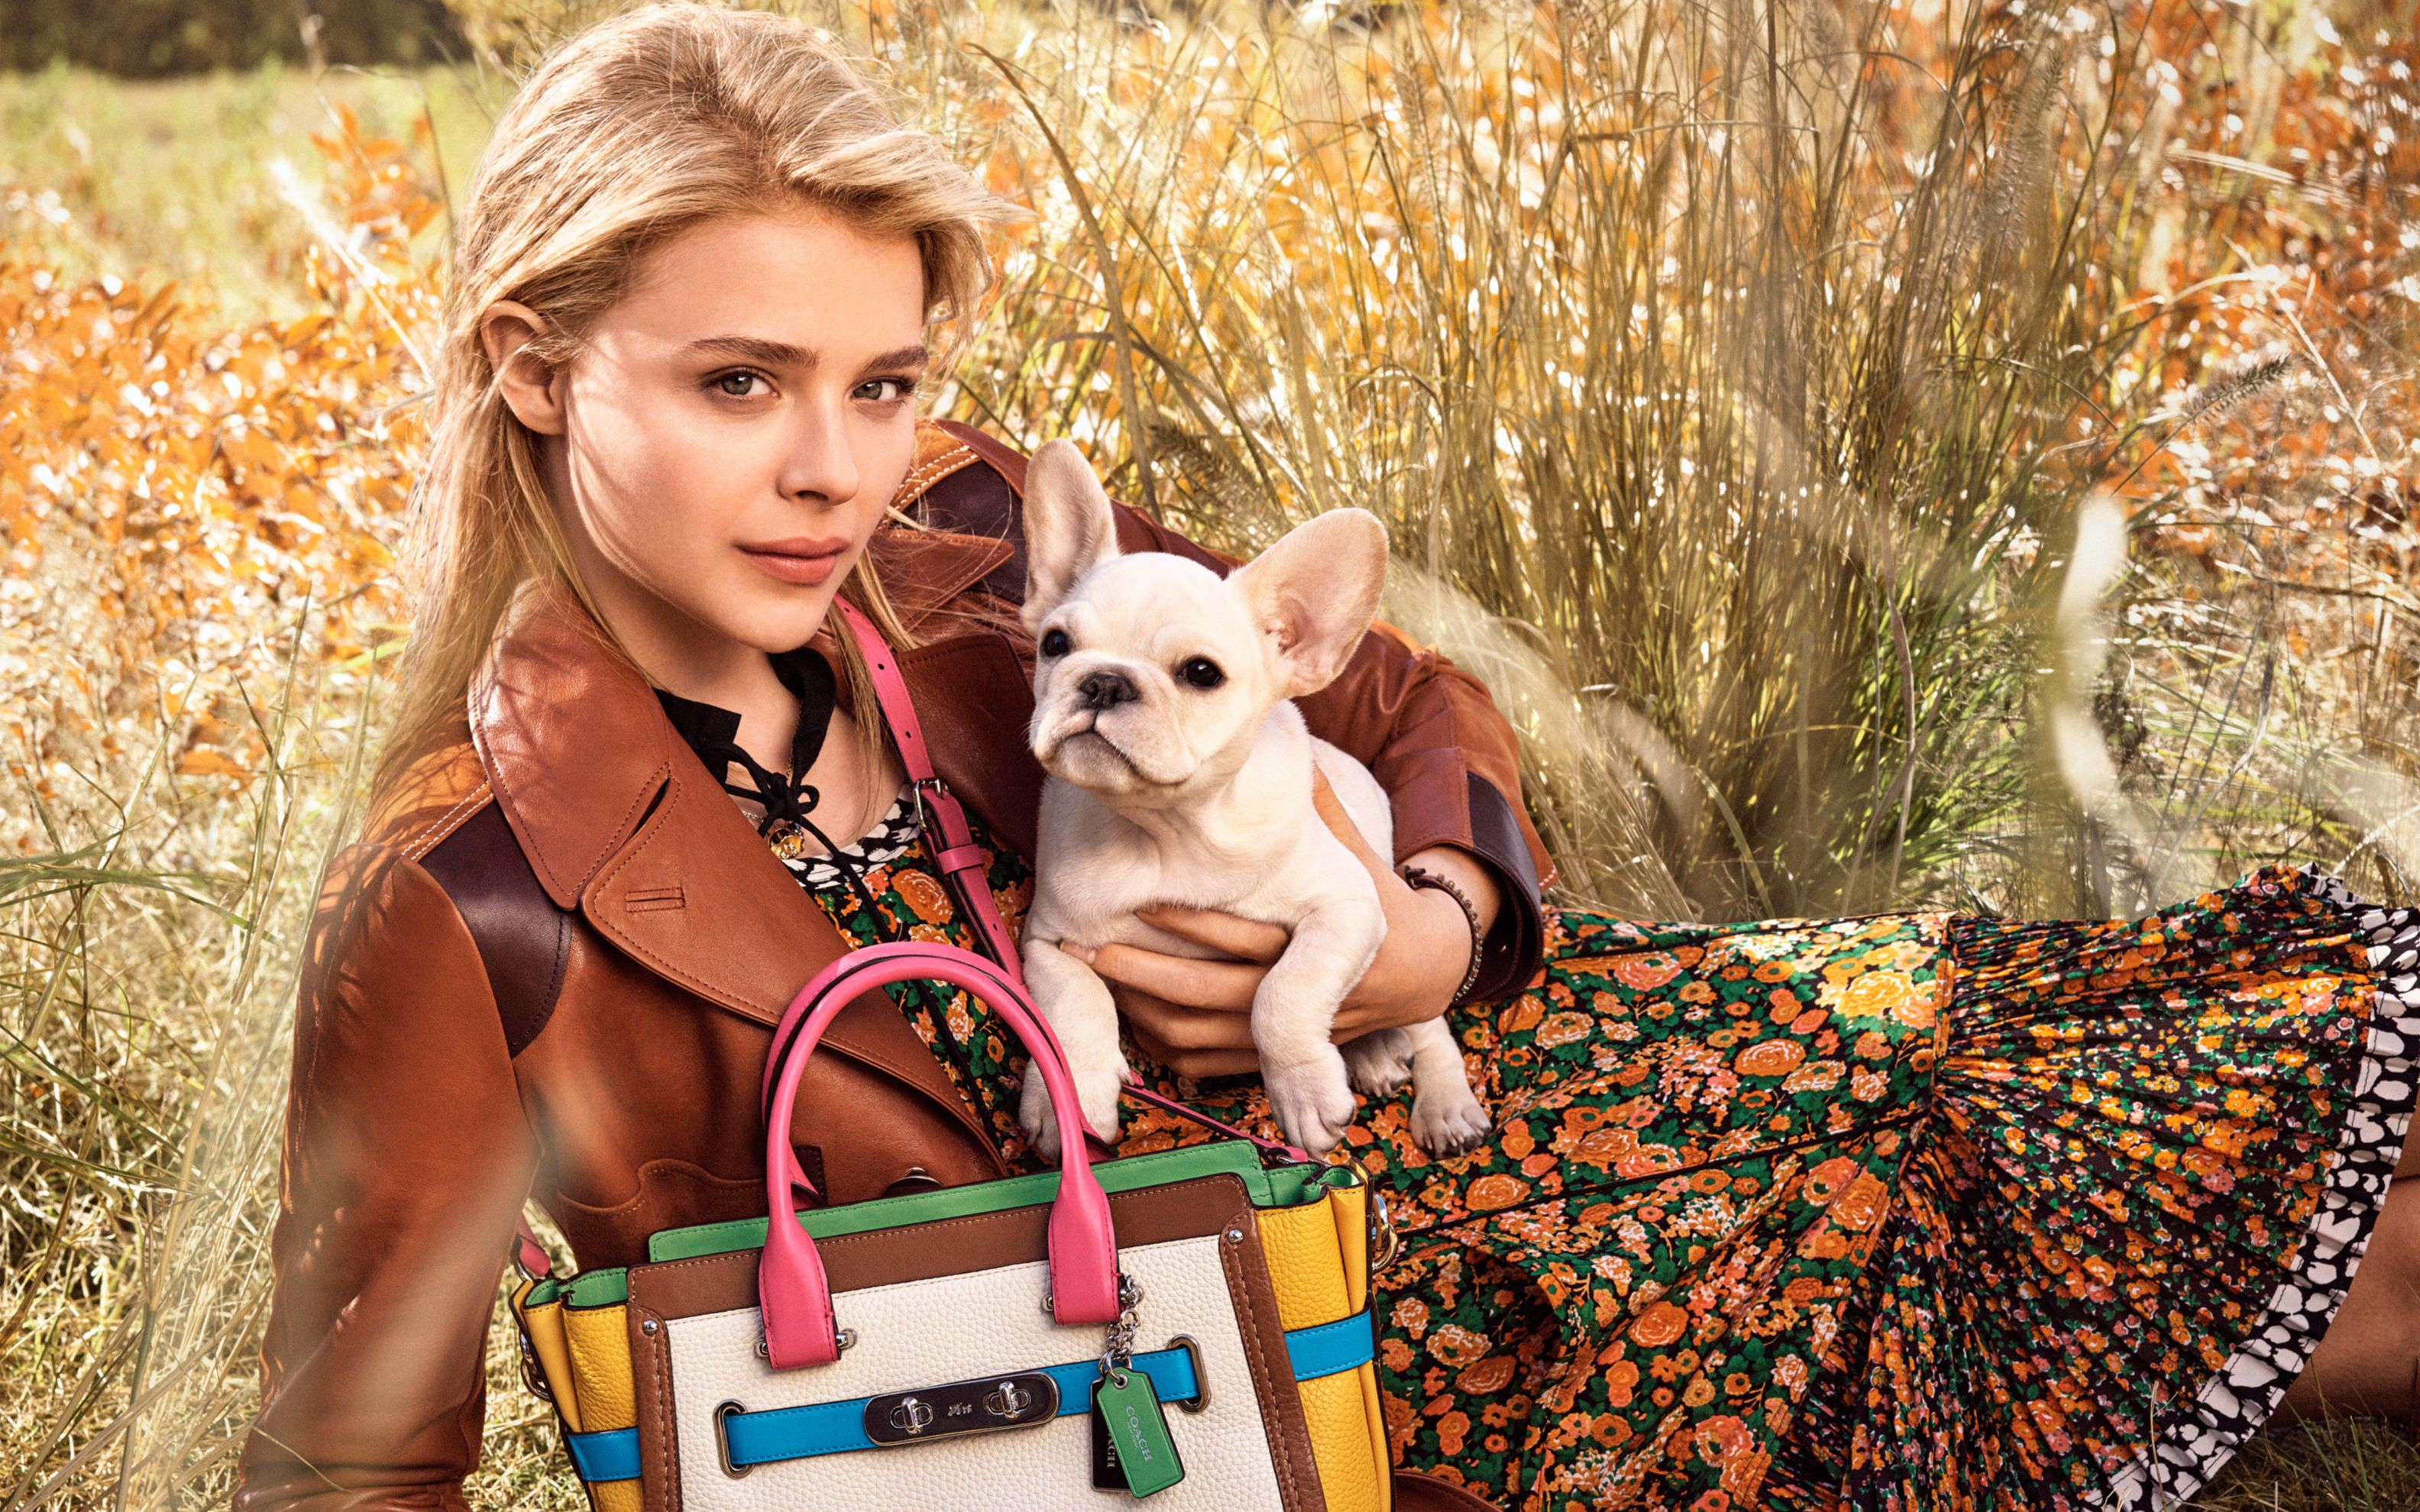 Download free HD Chloe Moretz 56 Wide Wallpaper, image